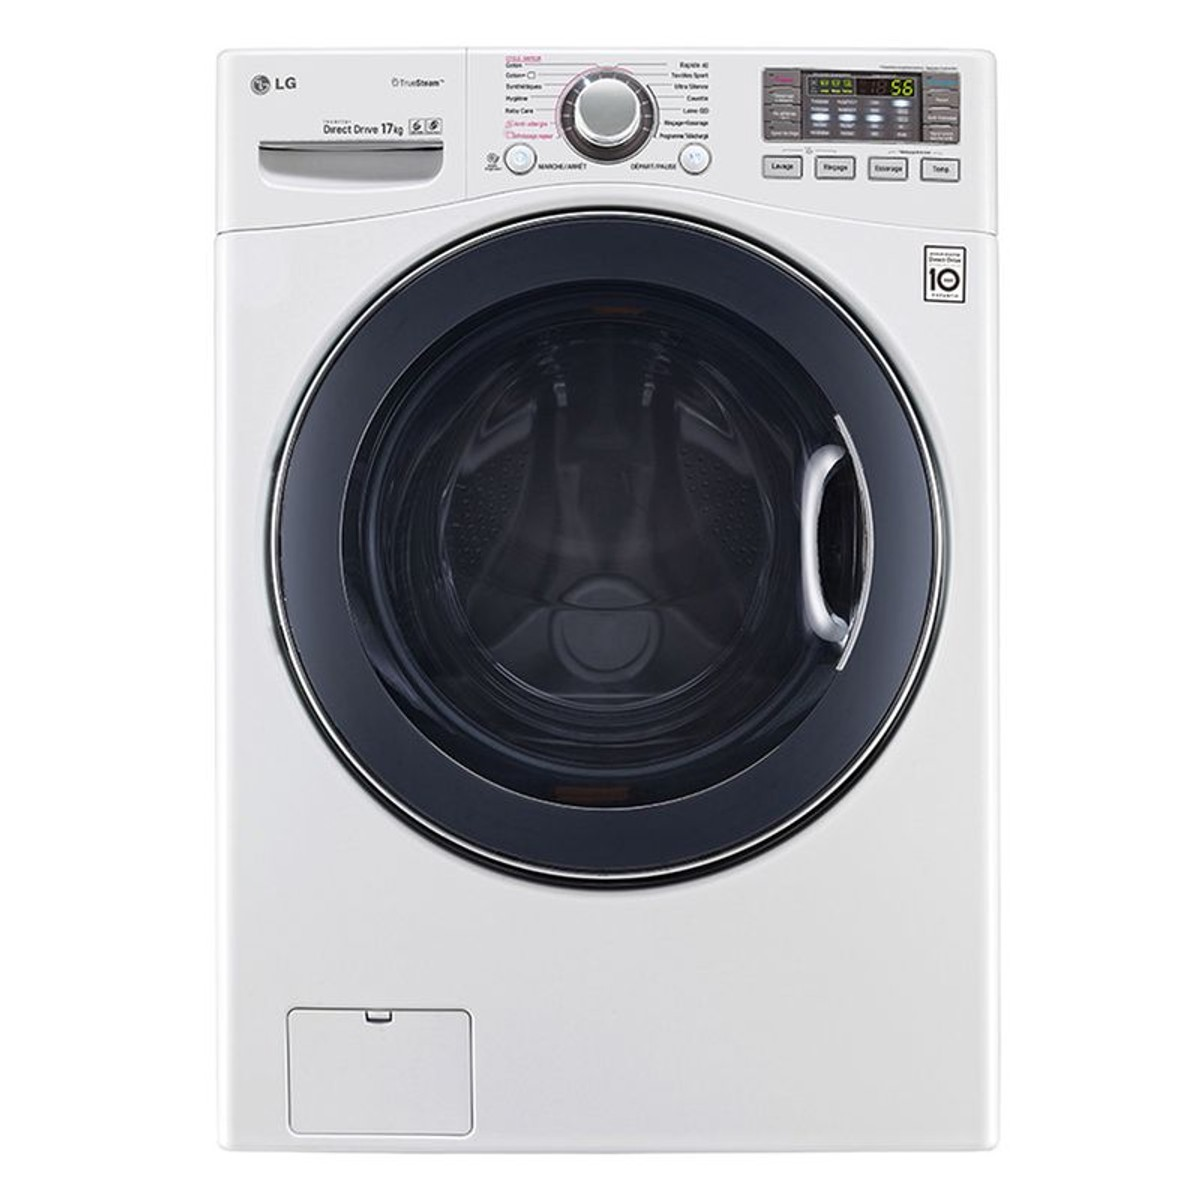 Lave Linge Frontale F 71 K 22 Wh 17kg A 58db Taille Taille Unique Lave Linge Lave Linge Frontal Et Lave Linge Hublot